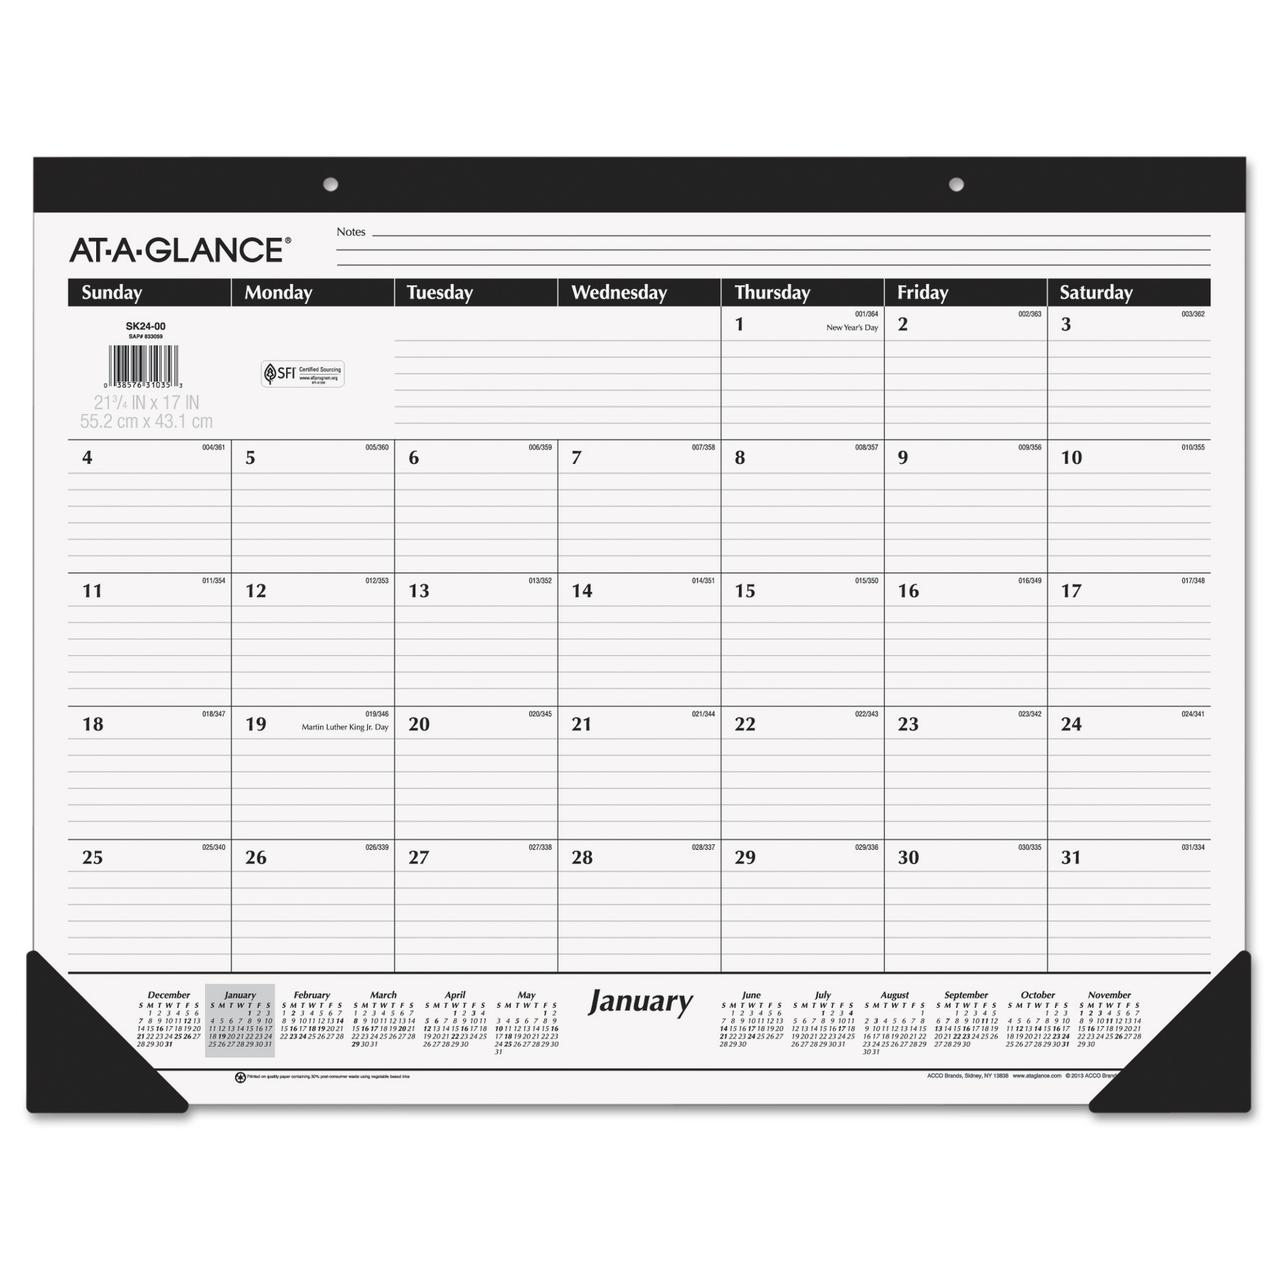 AT-A-GLANCE Ruled Desk Pad, 22 x 17, 2017